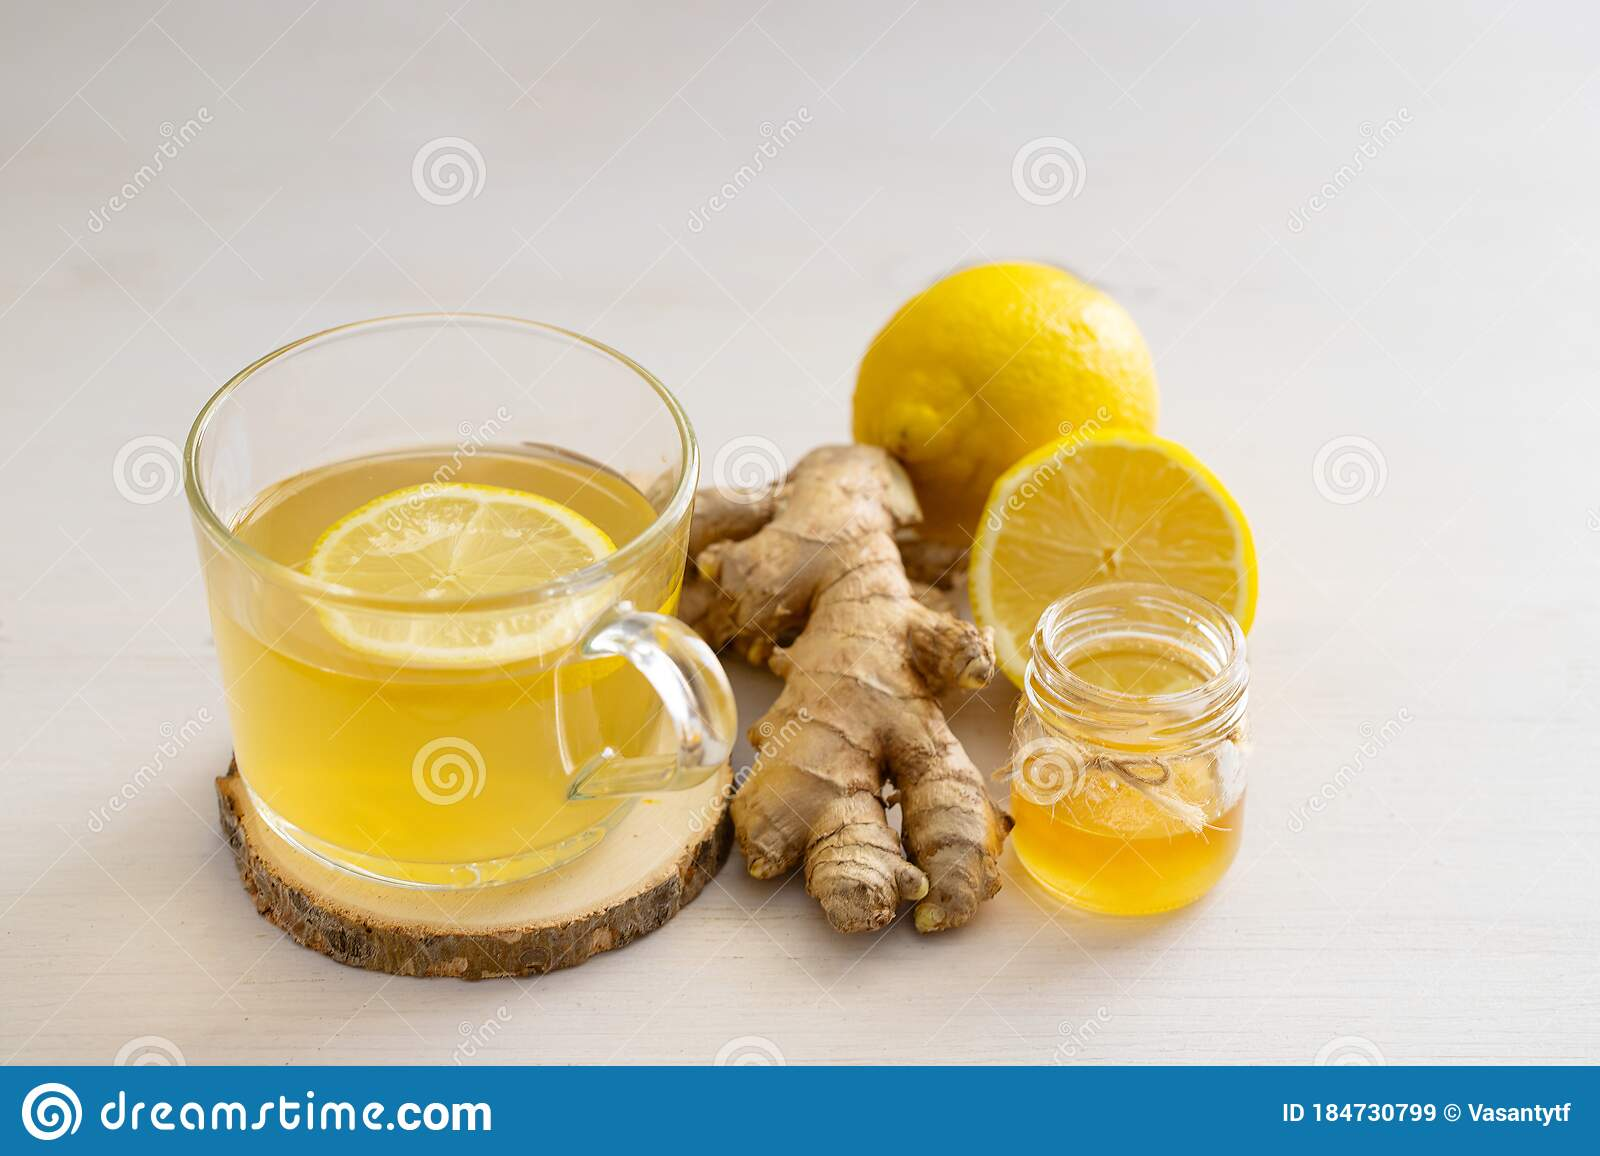 Ginger Tea For Flue And Cold Stock Image Image Of Remedies Benefits 184730799